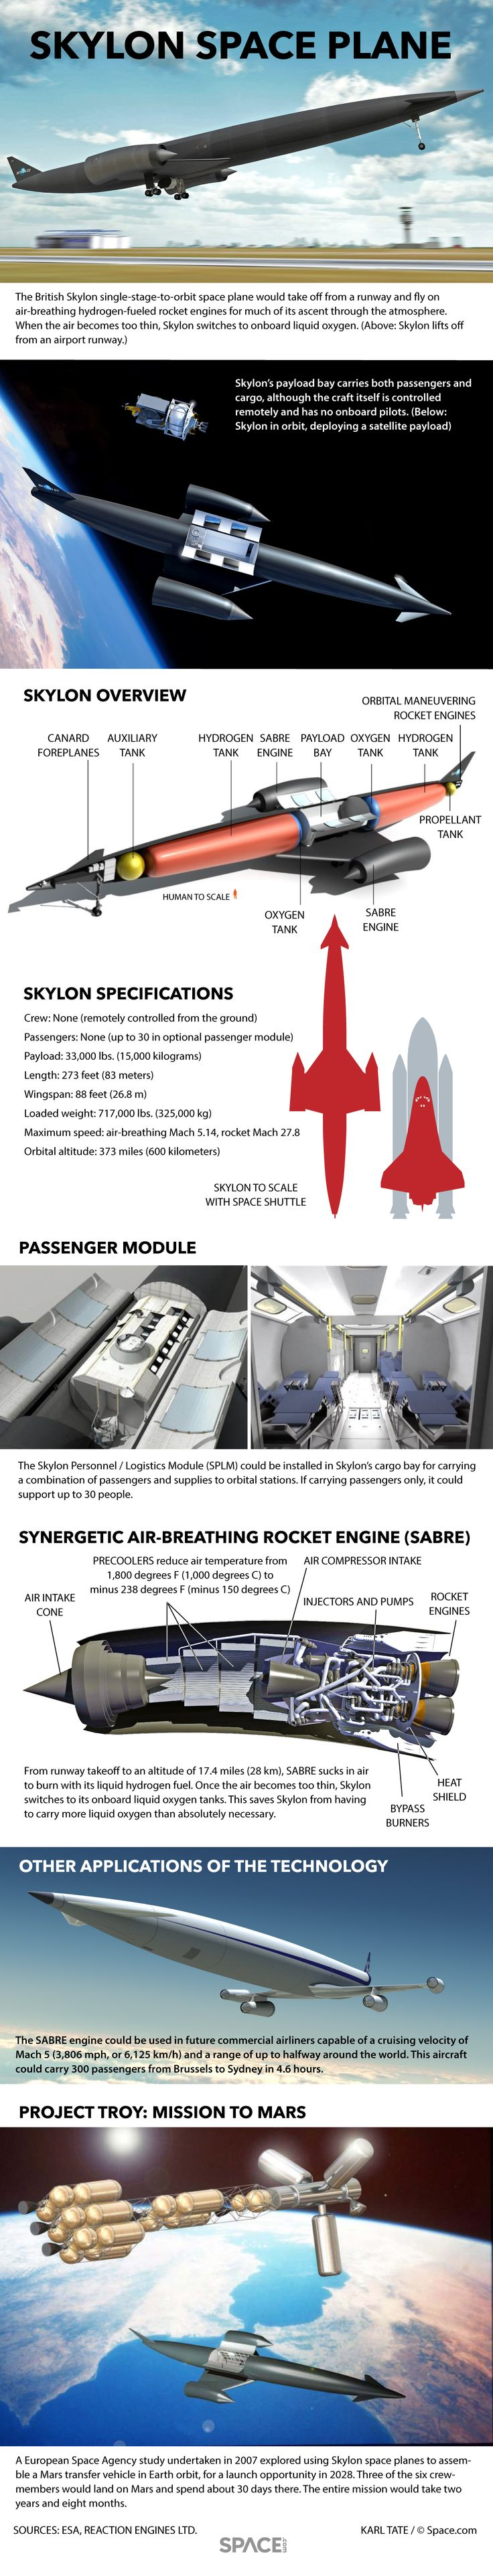 How the British Skylon Space Plane Works (Infographic) By Karl Tate, Infographics Artist - See more at: http://www.space.com/32112-how-skylon-space-plane-works-infographic.html#sthash.IrPq7F8R.dpuf